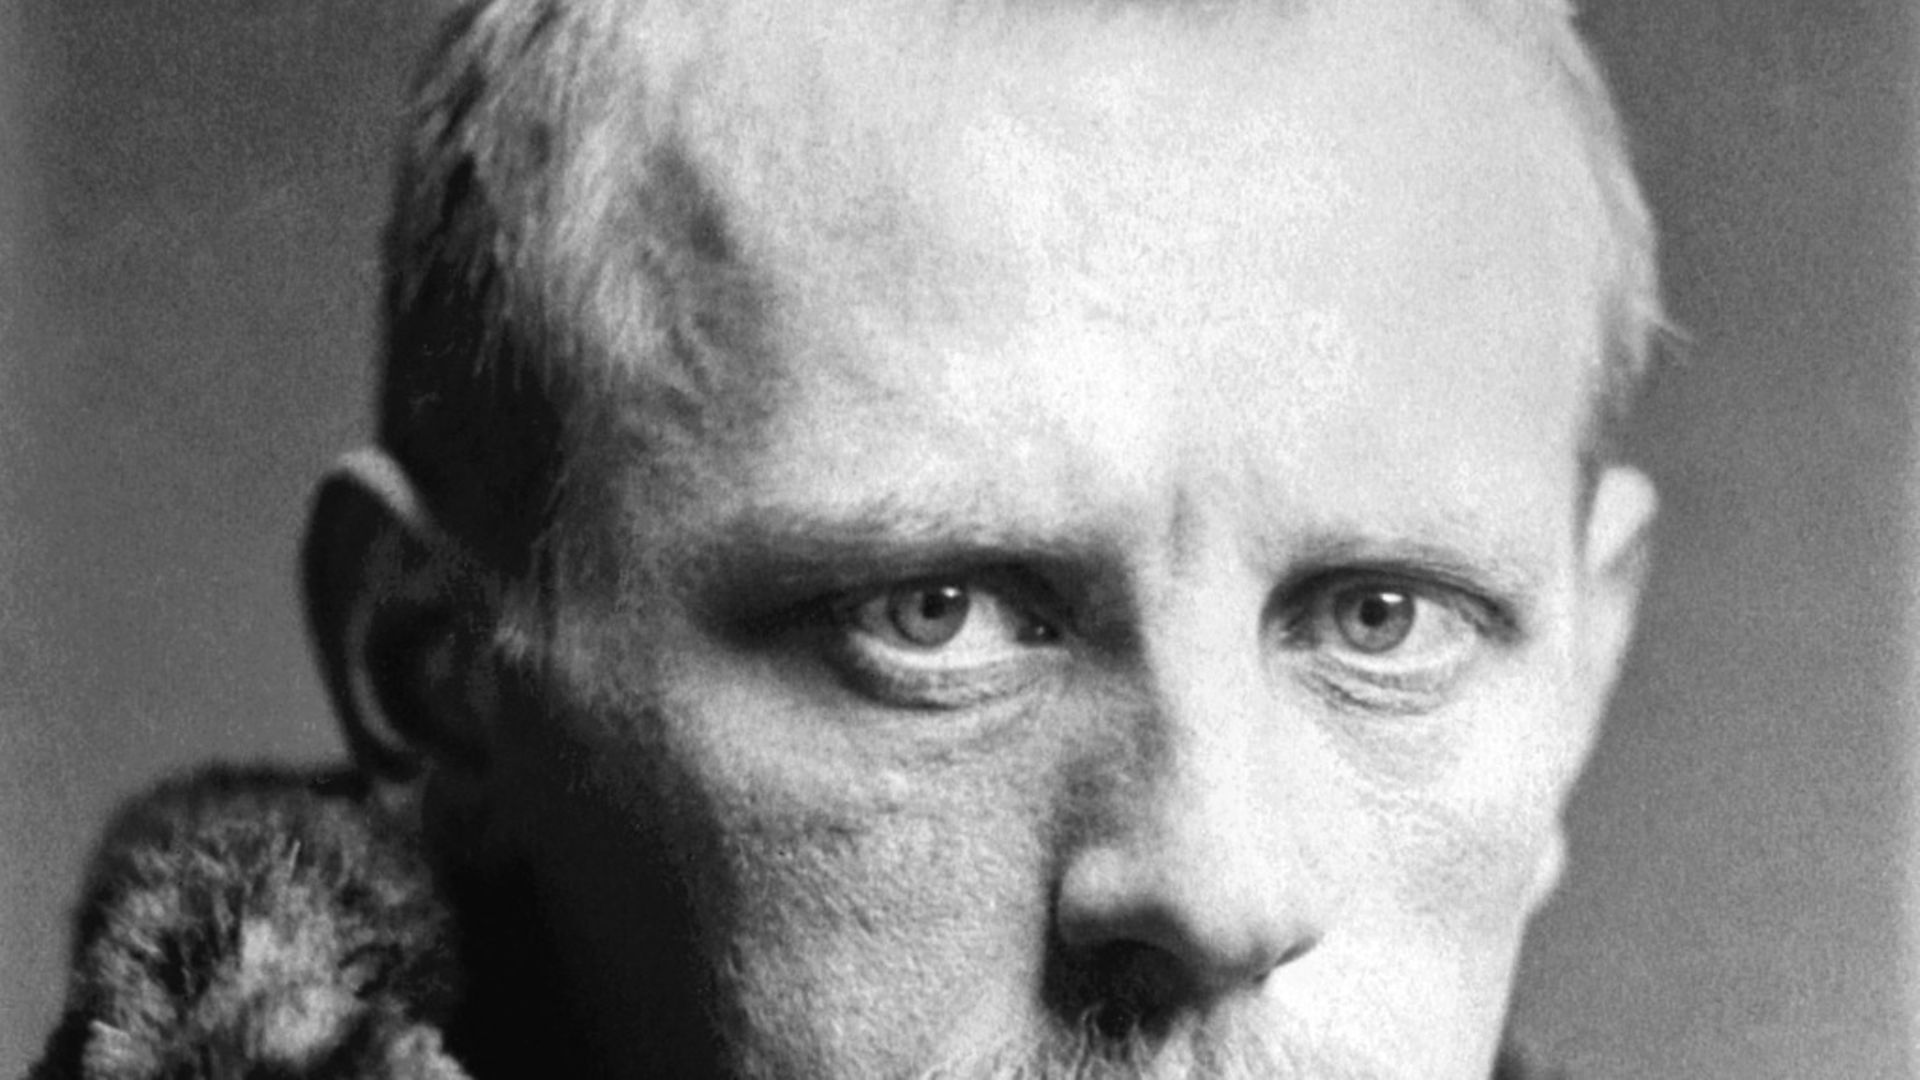 A portrait of Norwegian explorer, diplomat, scientist and Nobel Peace Prize winner Fridtjof Nansen, Norway, circa 1900. (Photo by Underwood Archives/Getty Images) - Credit: Getty Images